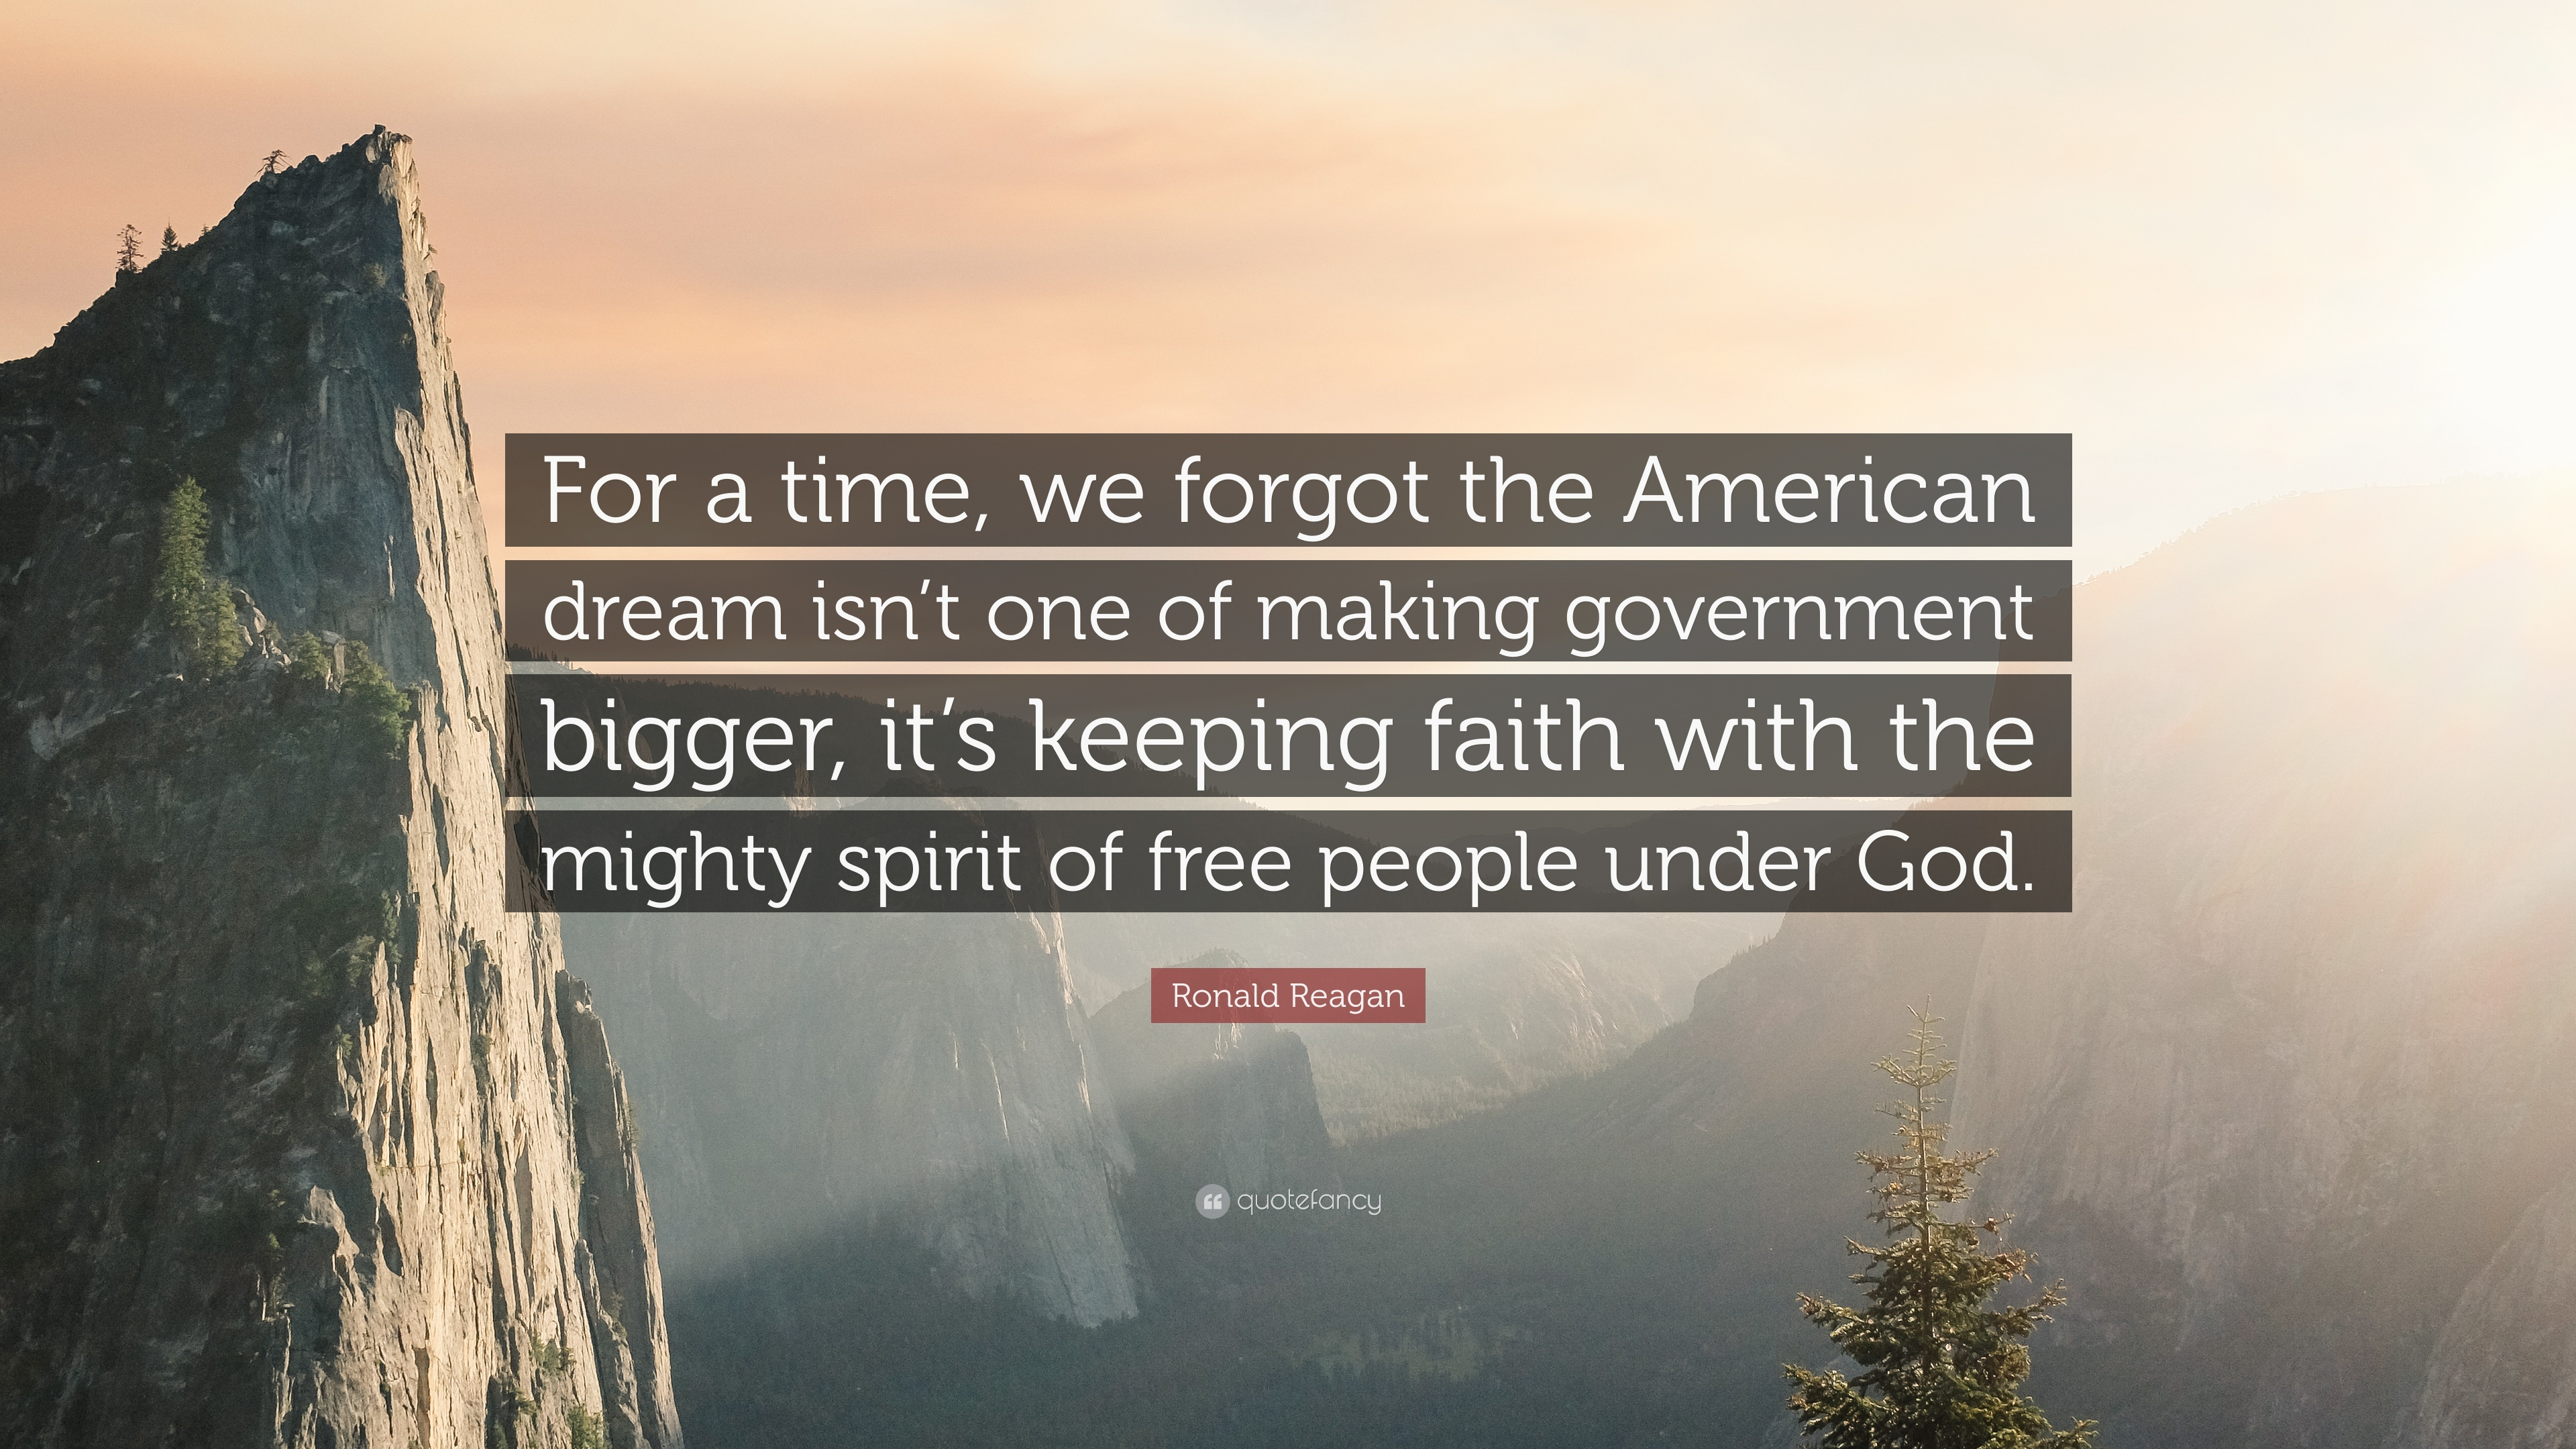 Ronald Reagan Quote For A Time We Forgot The American Dream Isnt